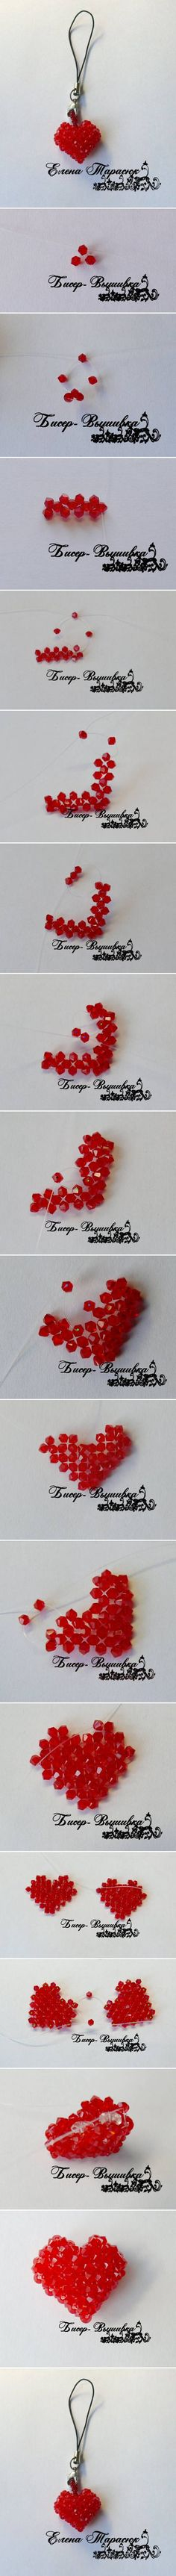 DIY Beads Heart Ornament DIY Beads Heart Ornament